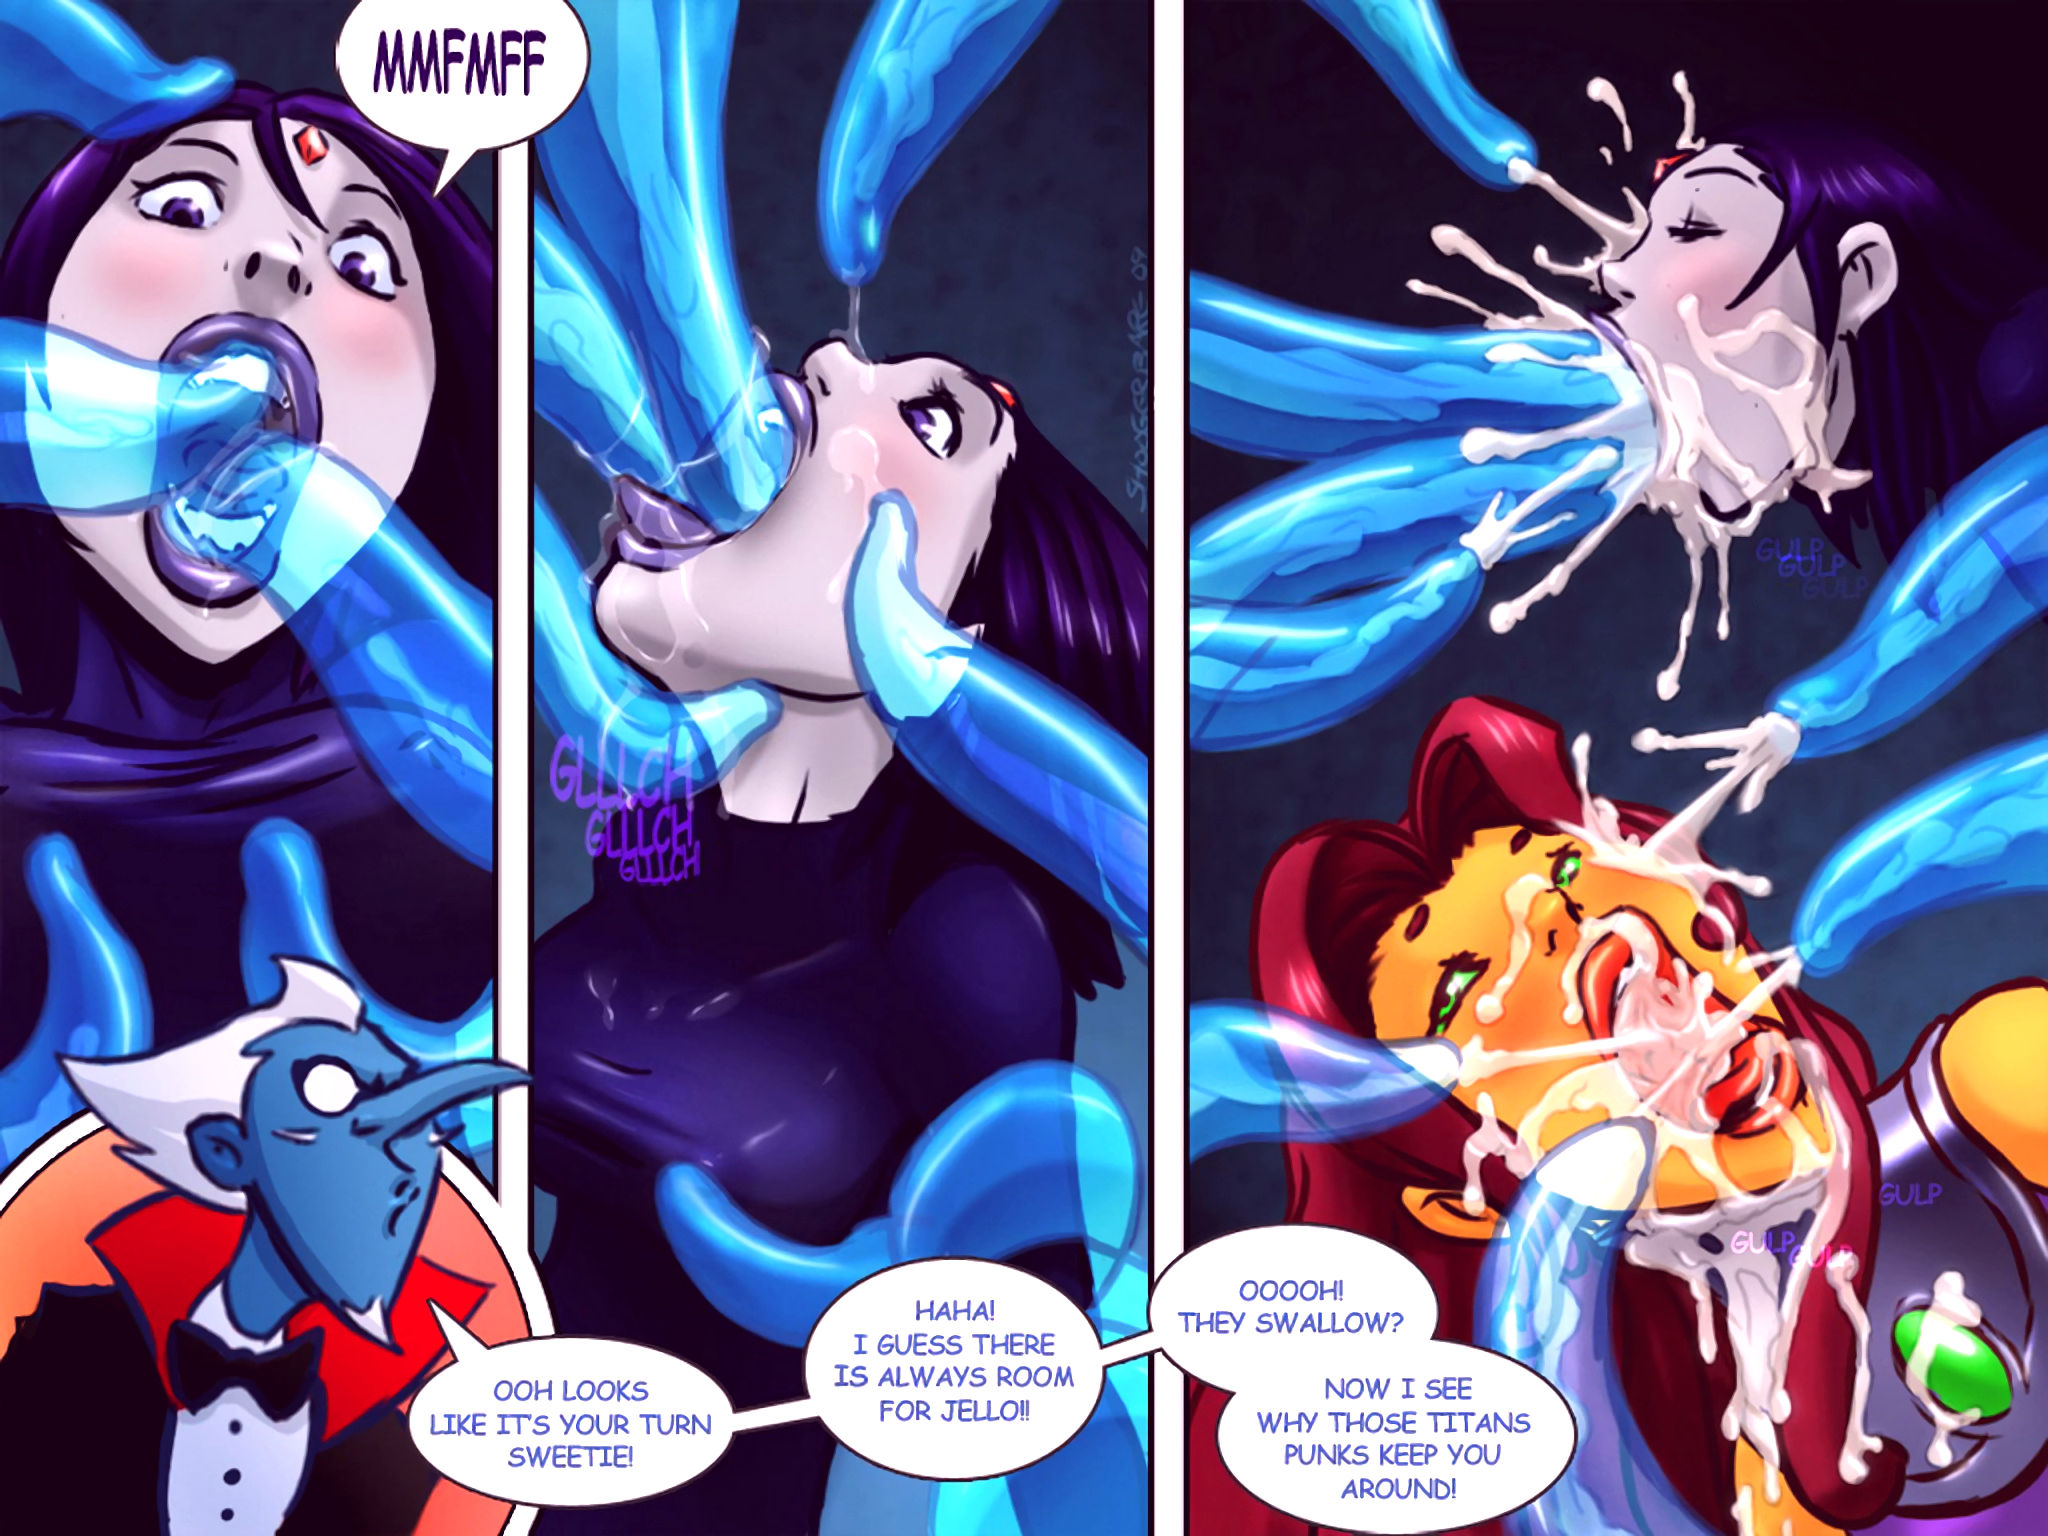 Tentacled titans porn comic picture 2